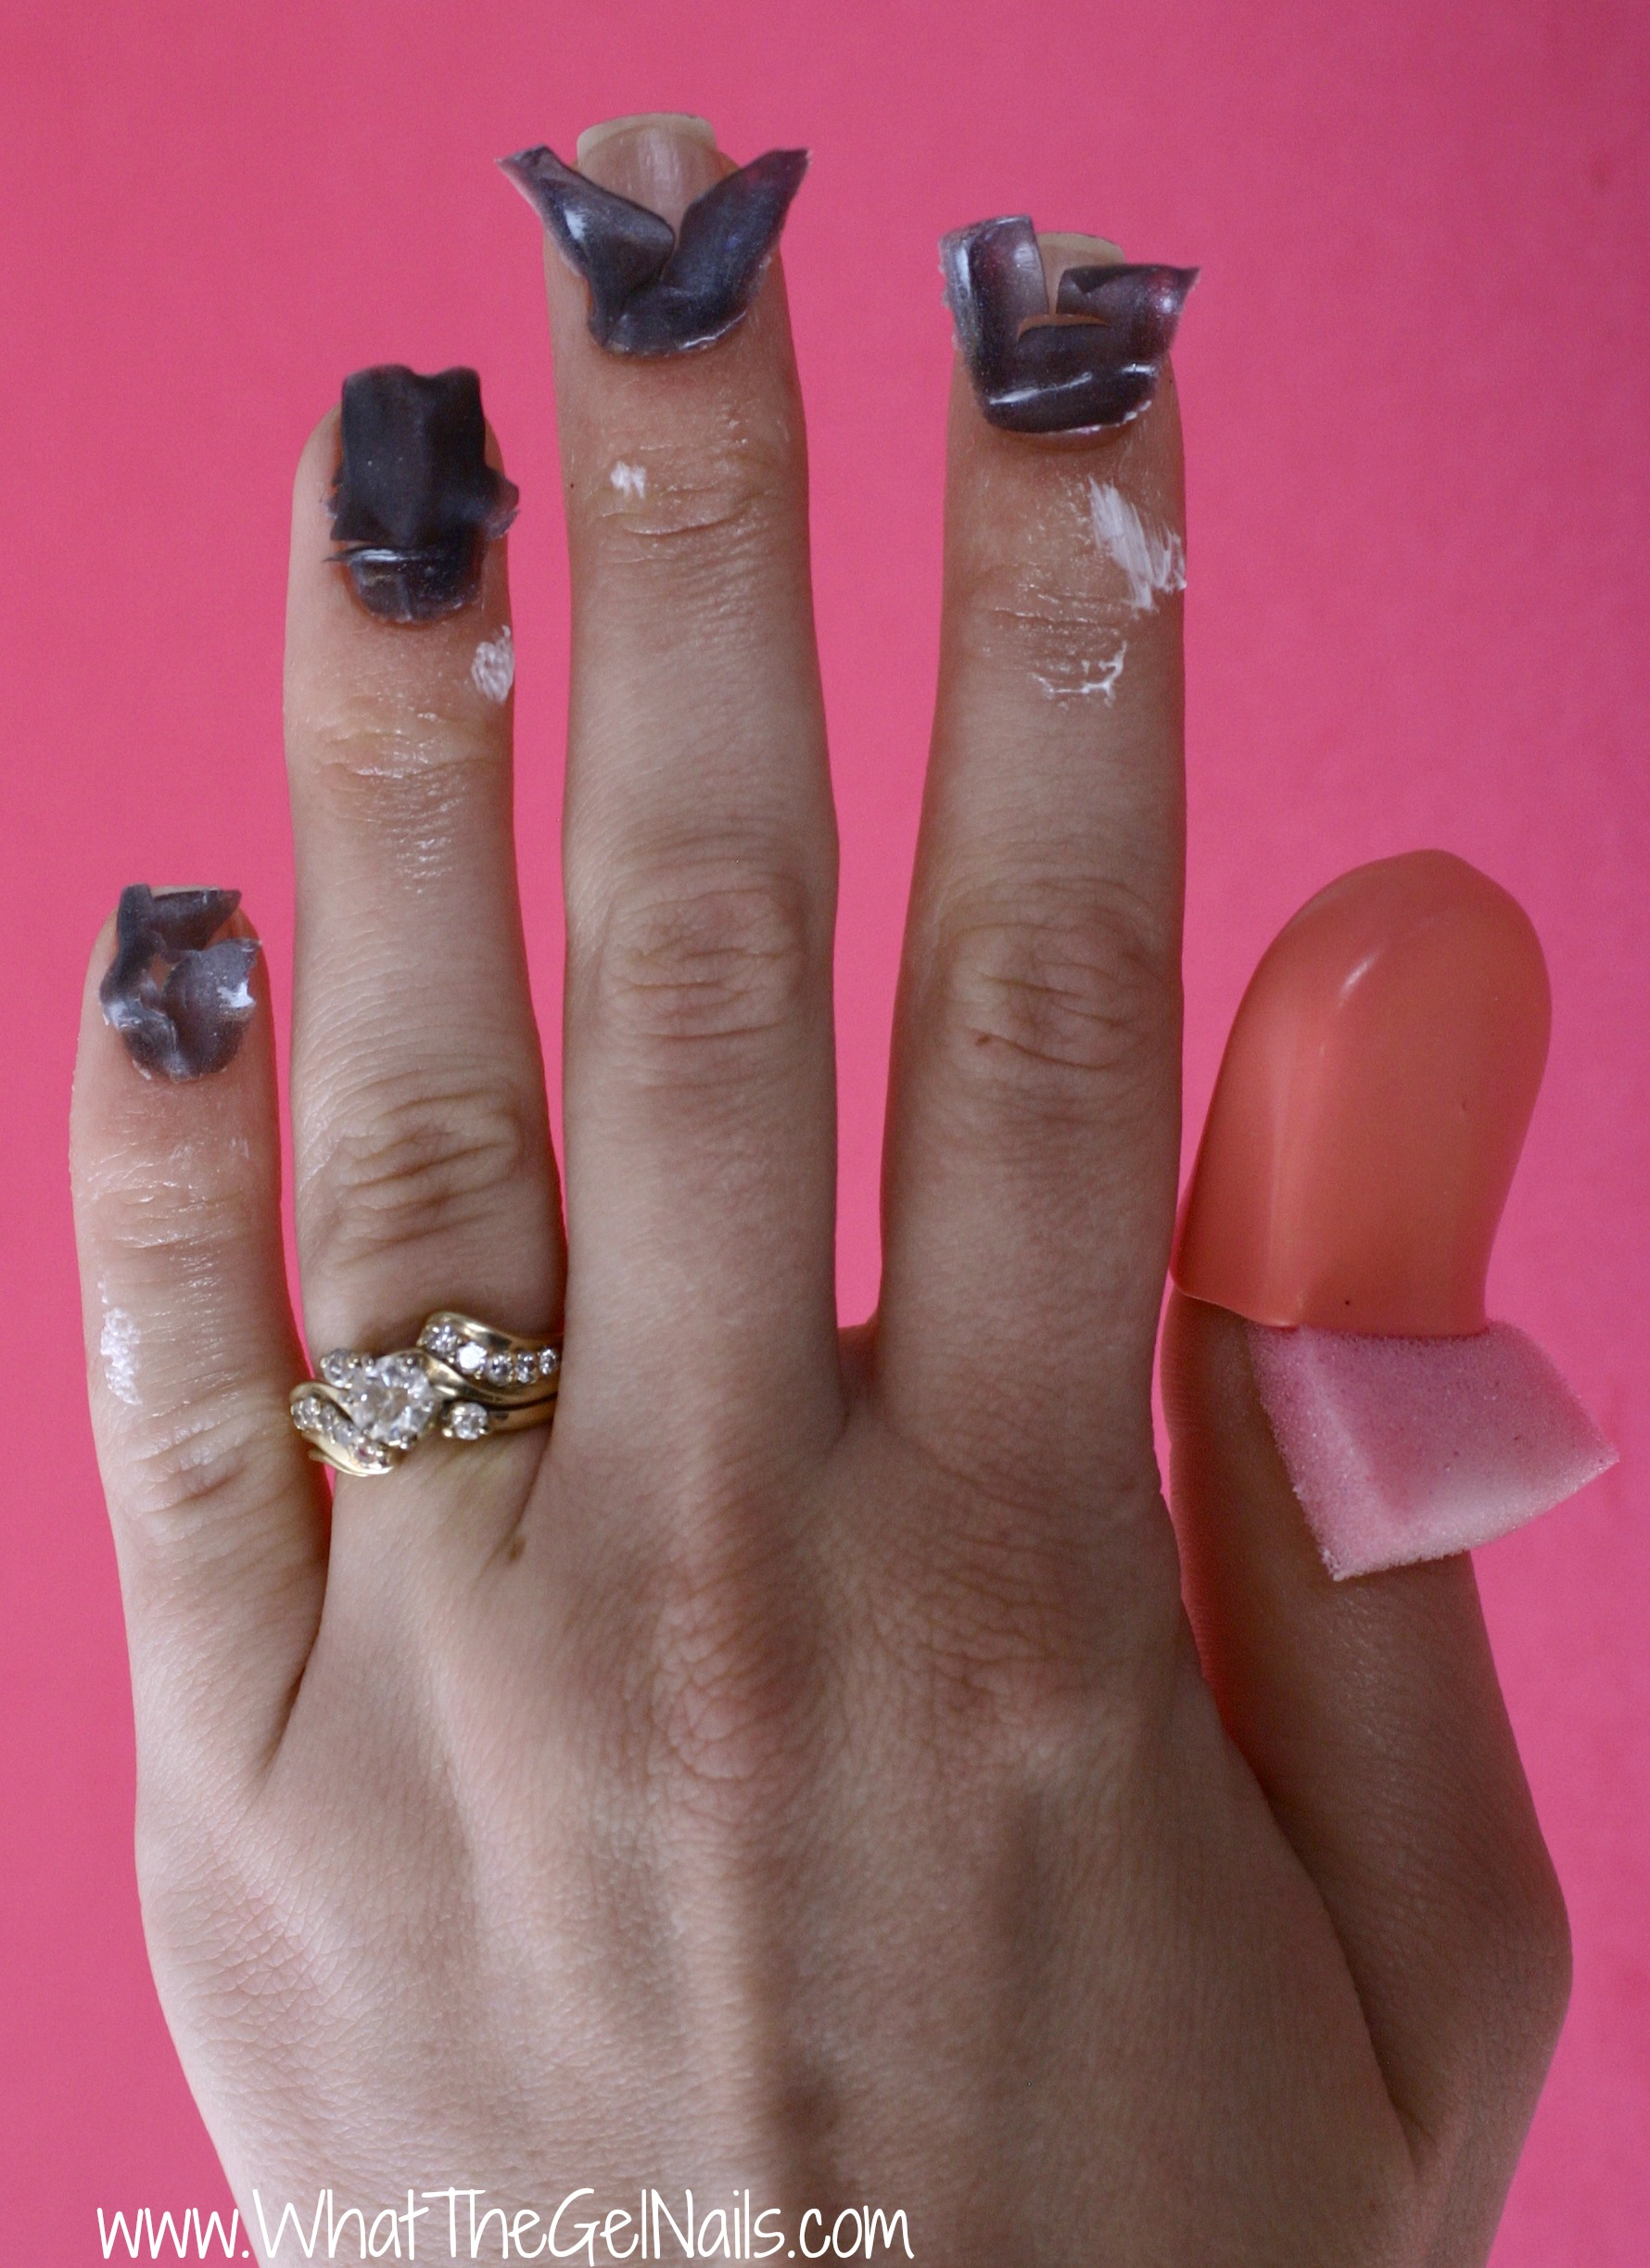 nails after gel photo - 2